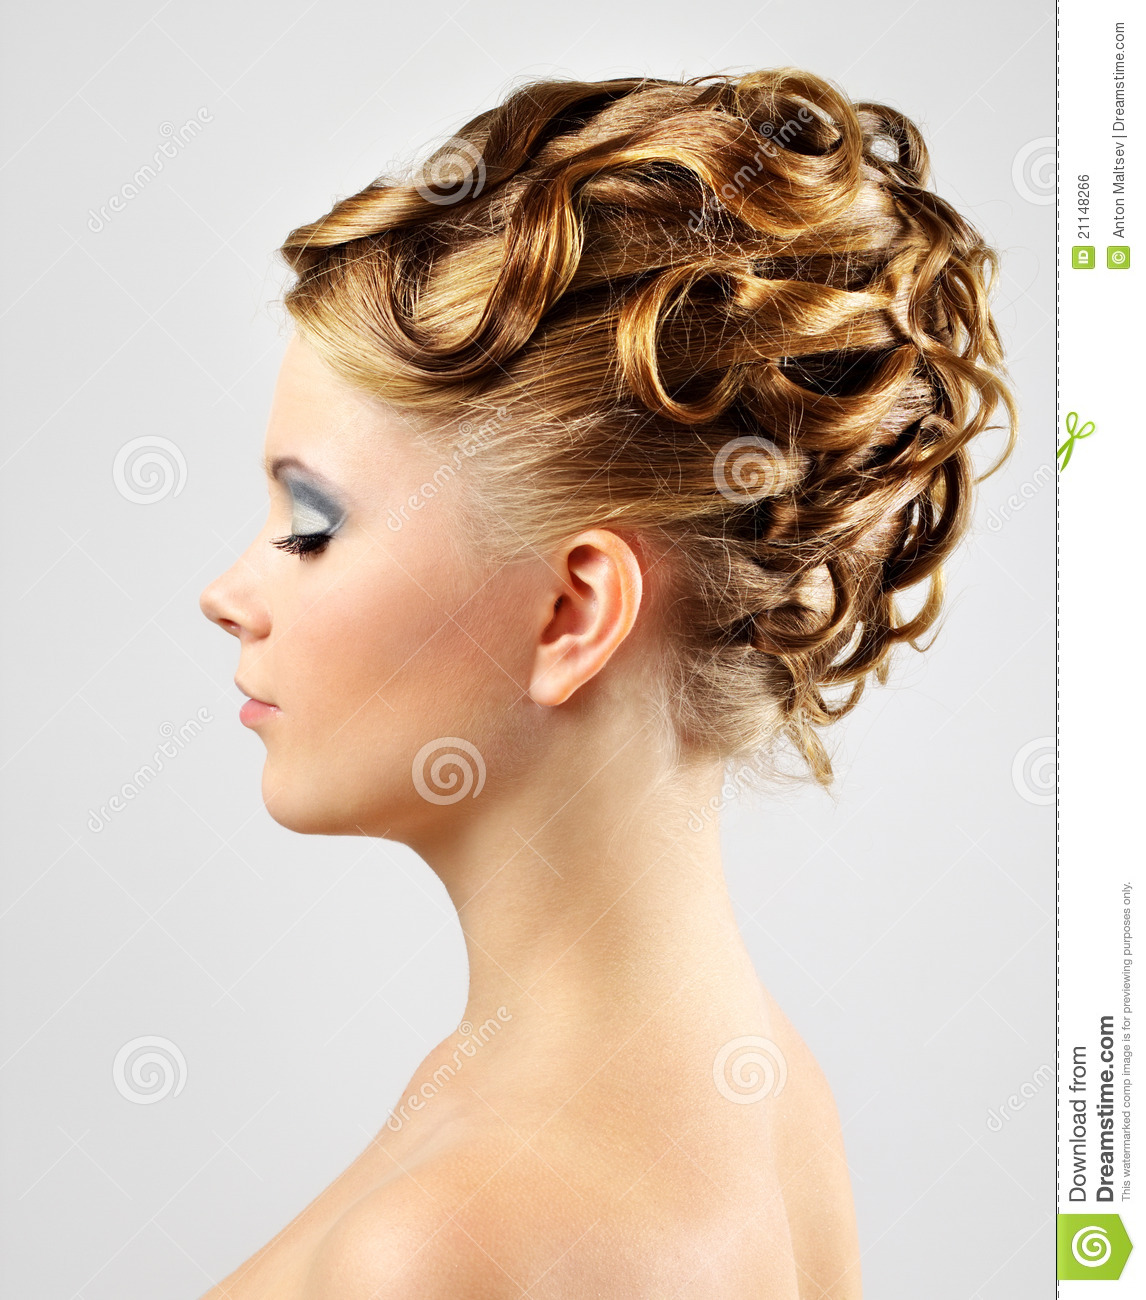 Modern Wedding Hairstyles: Modern Wedding Hairstyle. On Gray Royalty Free Stock Image